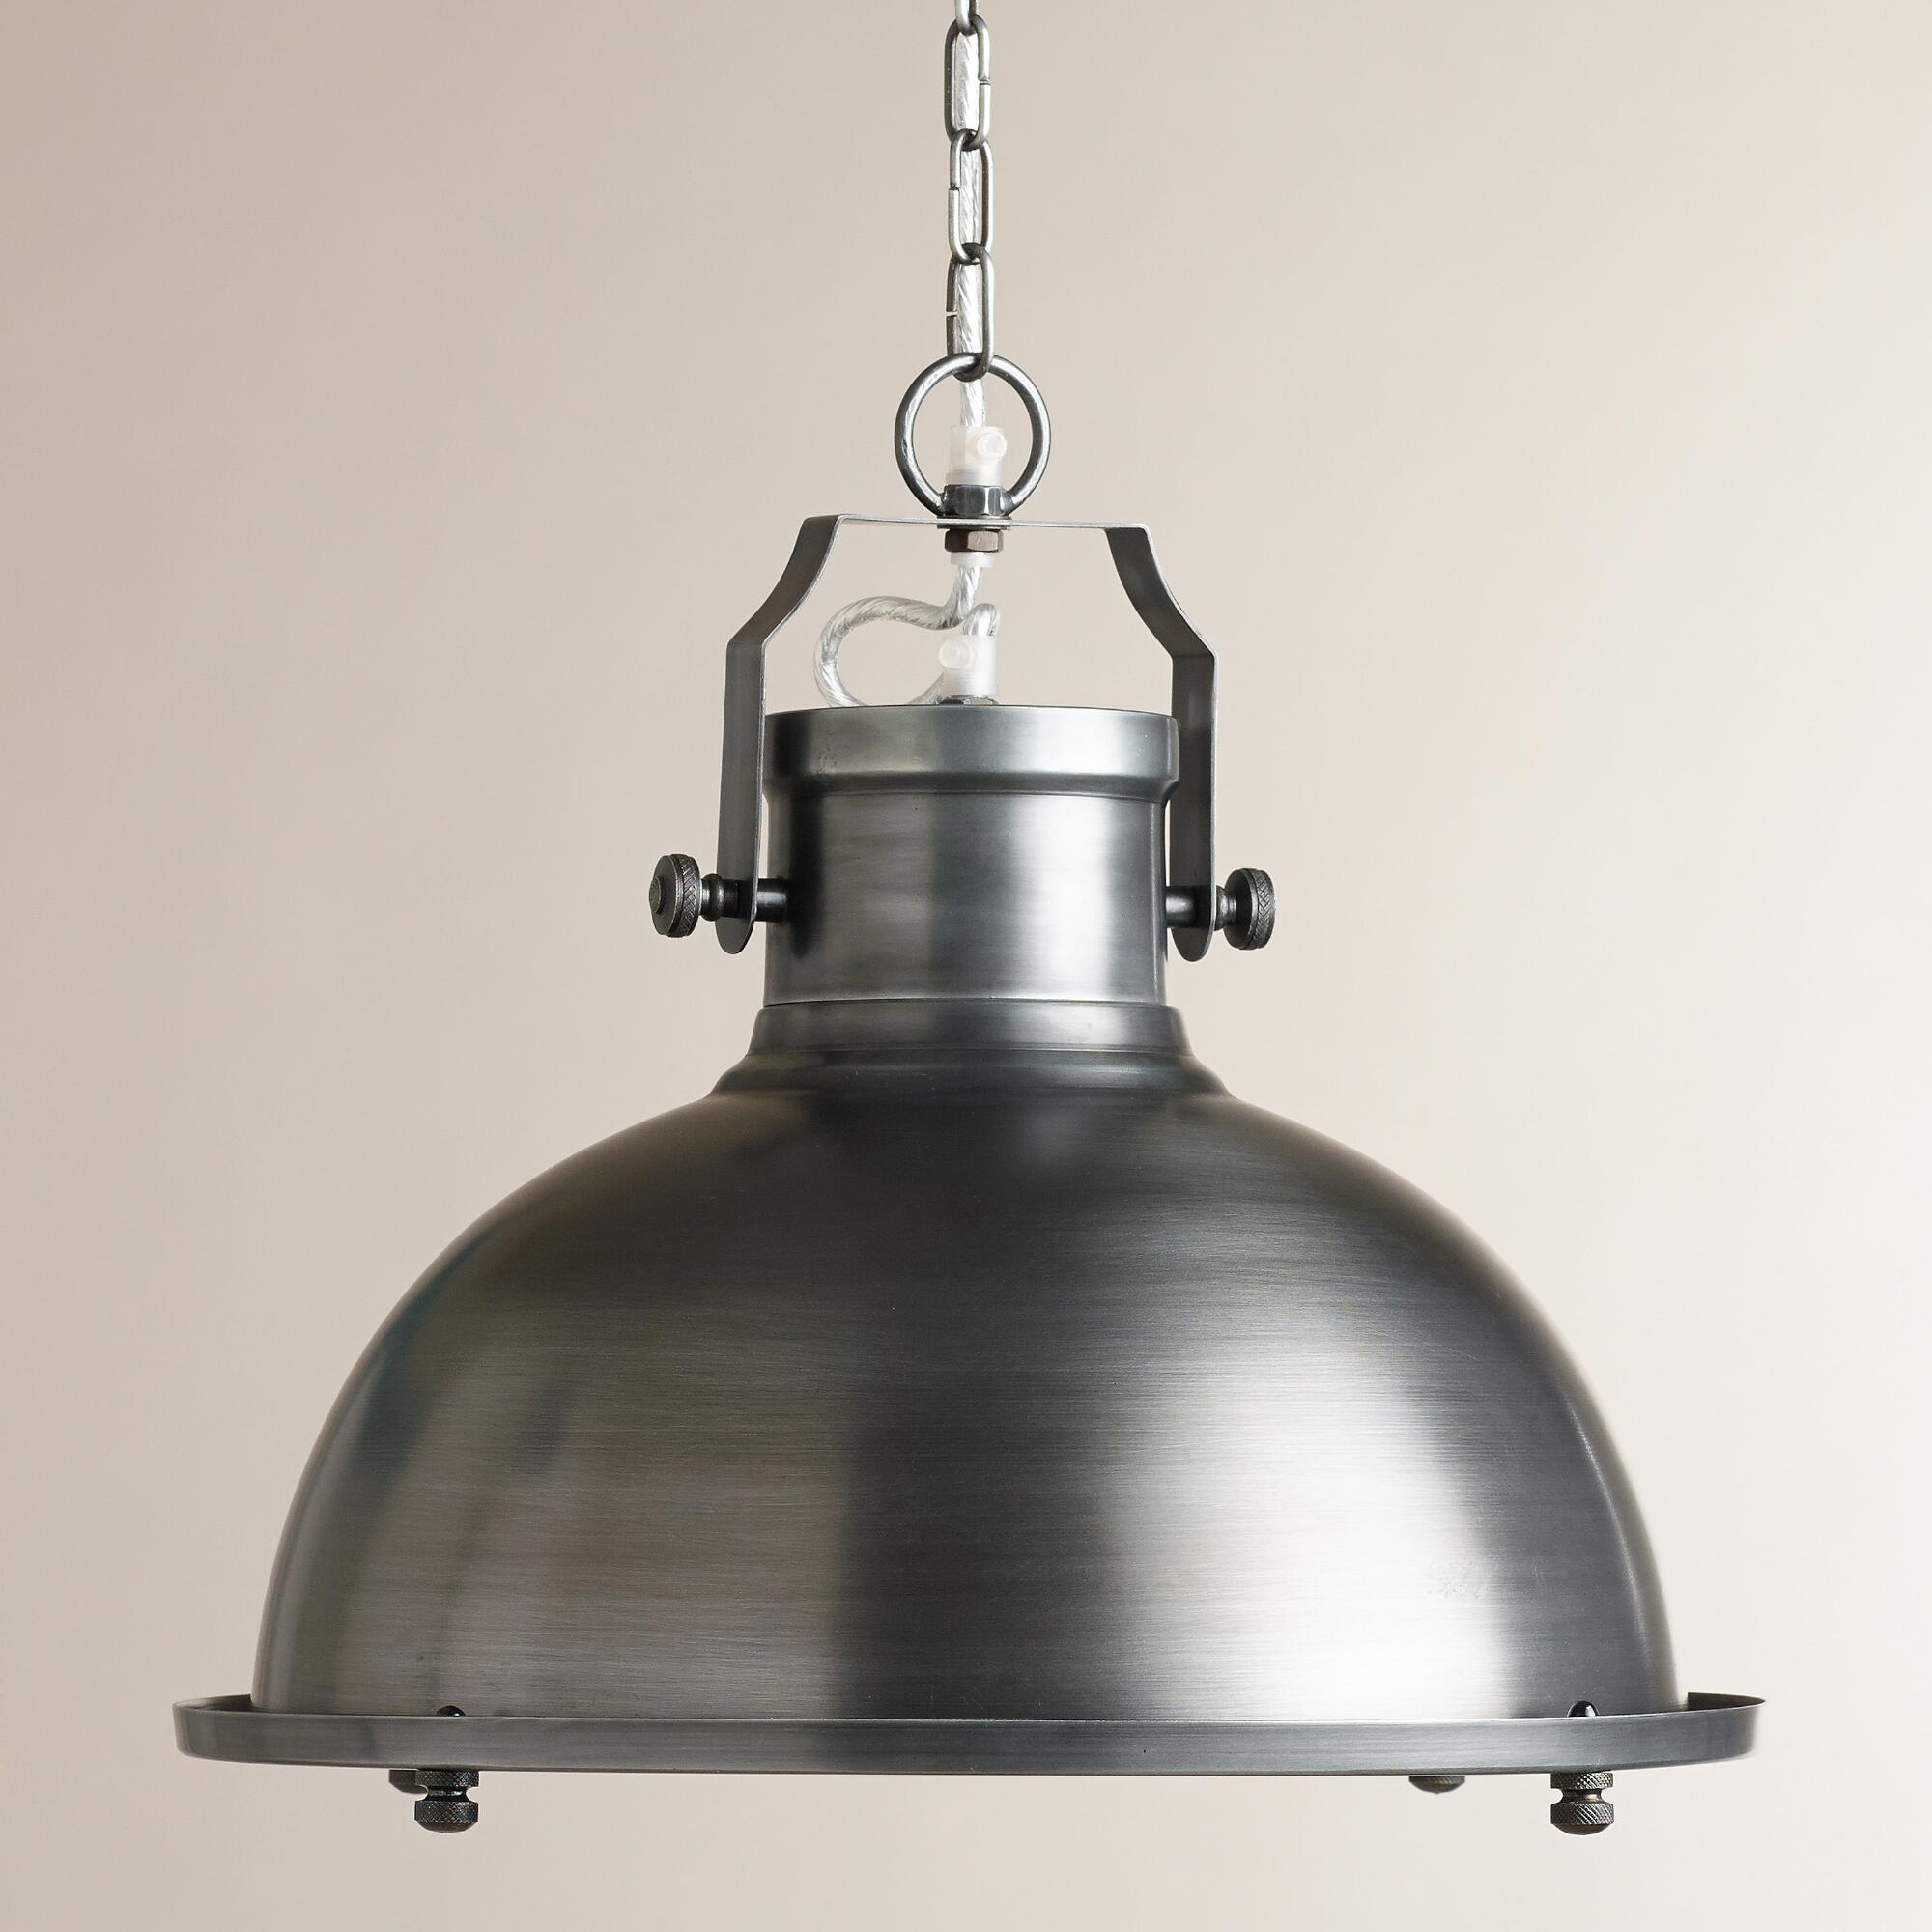 Nautical metal hanging pendant lamp world market for Metal hanging lights